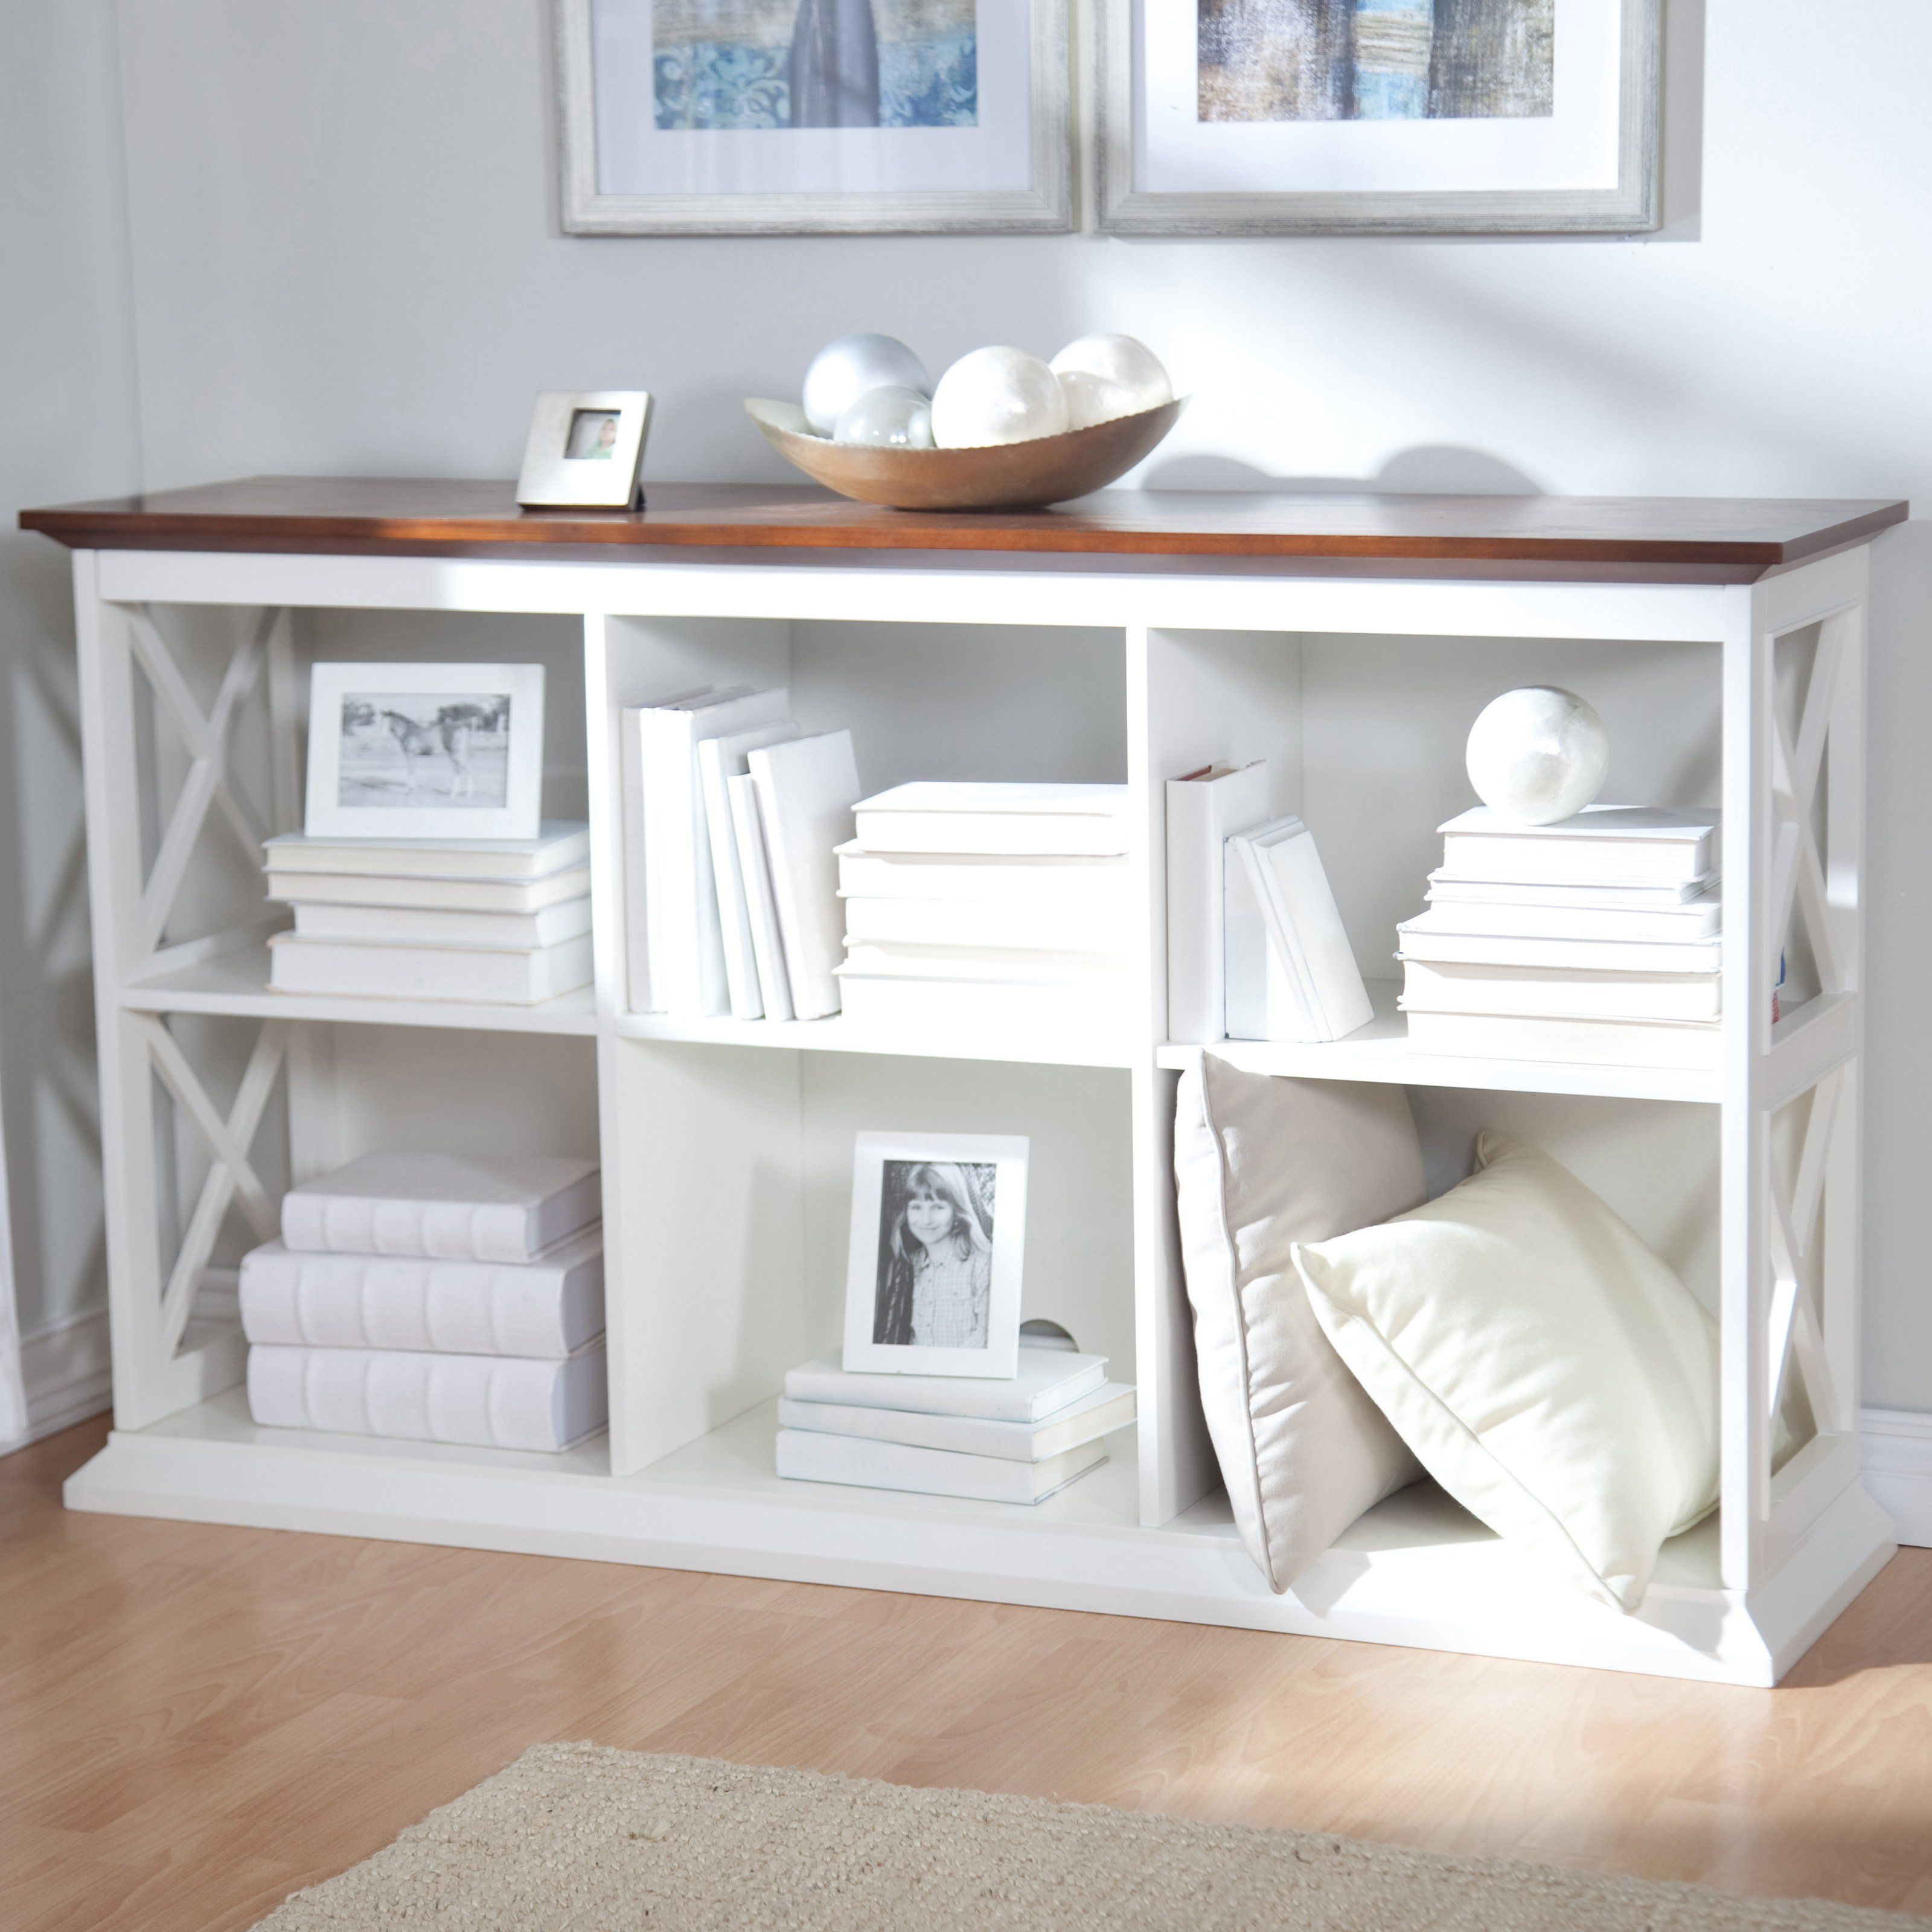 Belham living hampton console table 2 shelf bookcase whiteoak belham living hampton console table 2 shelf bookcase whiteoak a hayneedle exclusive geotapseo Choice Image